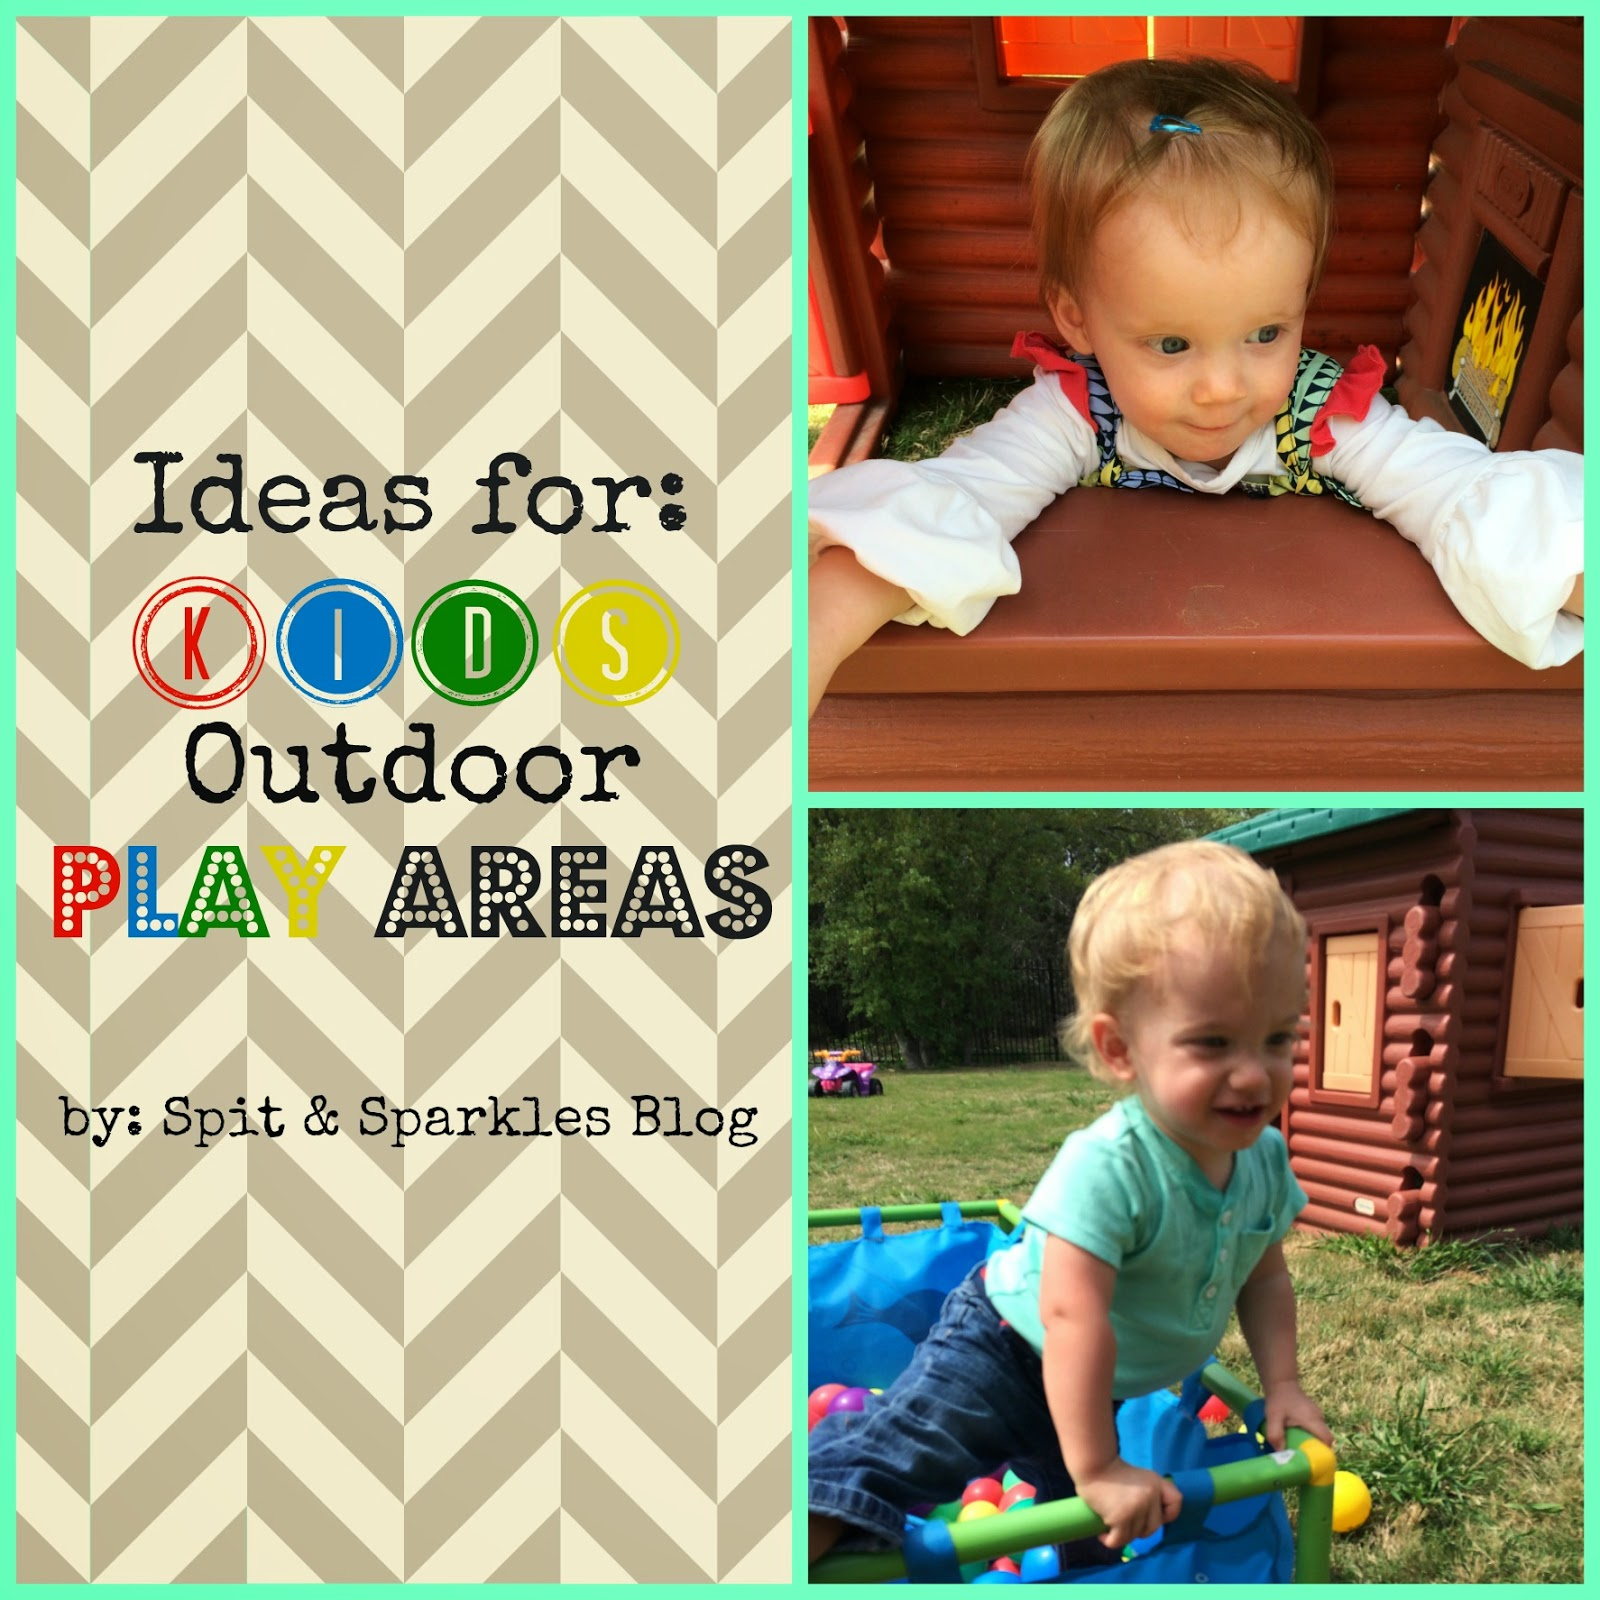 Sew Crafty Angel Ideas for Outdoor Play Areas